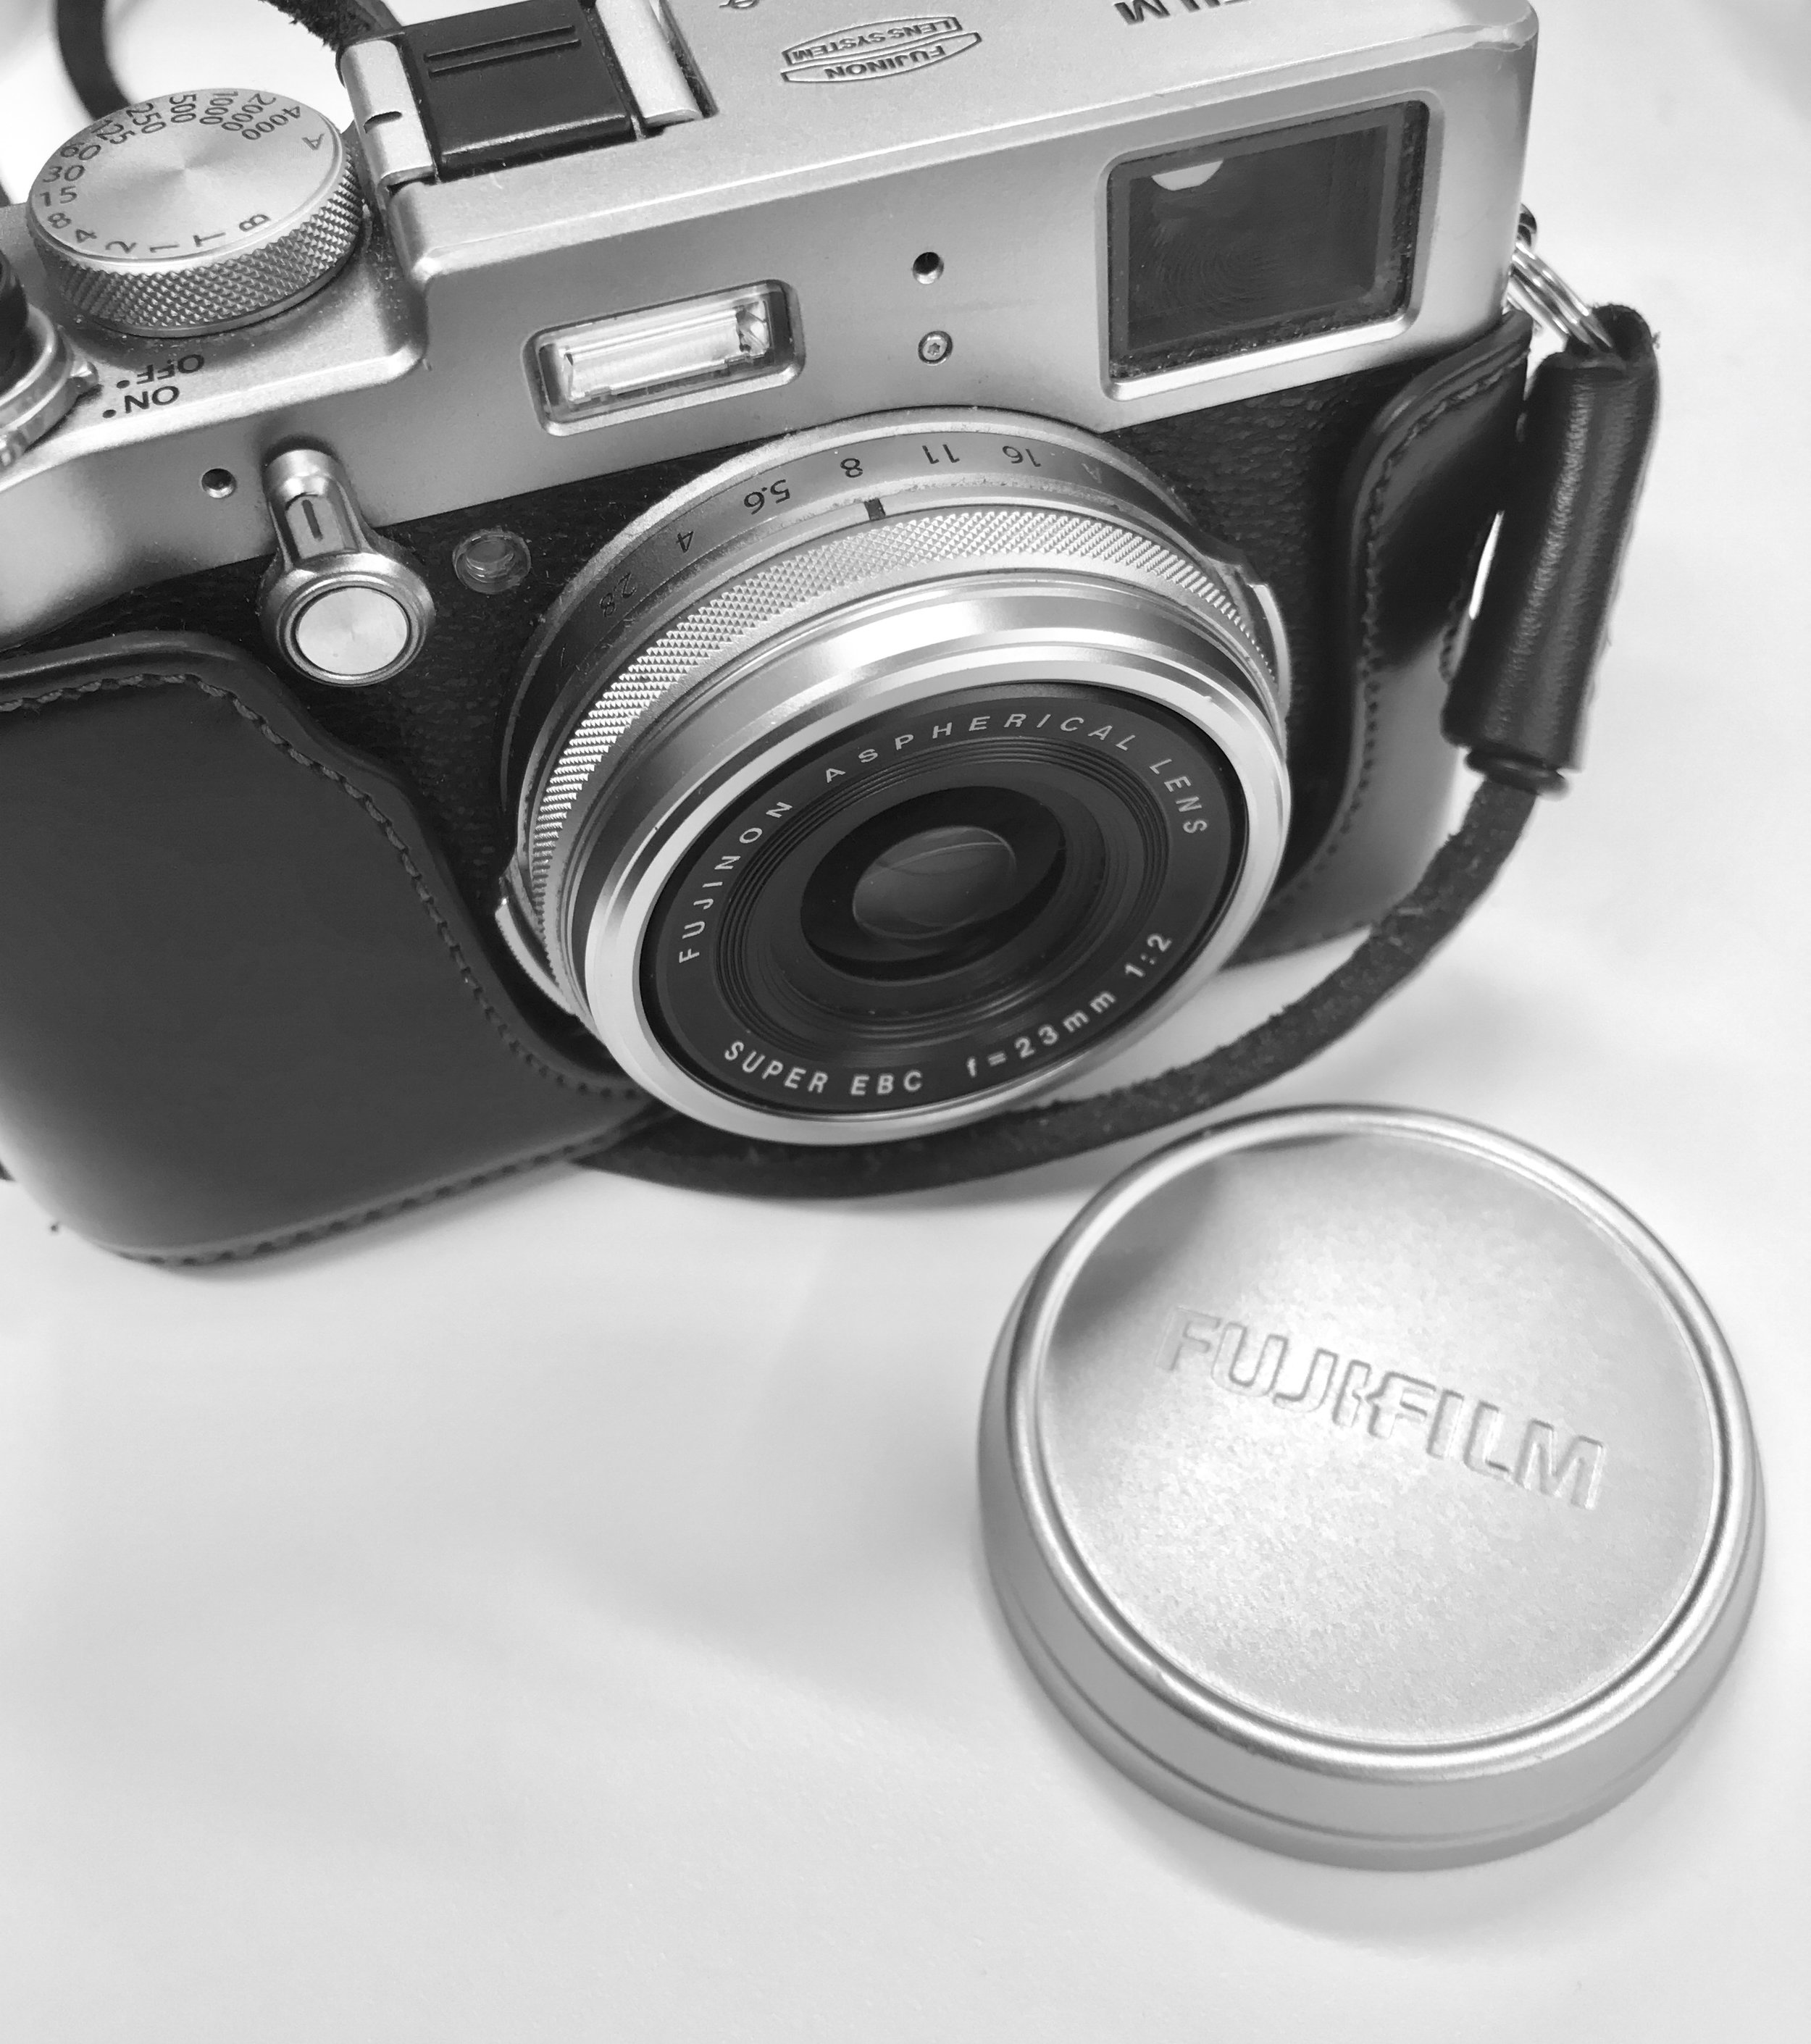 - There's a new blog entry up at Photosjhoot.com, talking about my how I might be making an error in automatically sticking a lens filter on, just for purposes of protection. Are they negatively impacting my image quality?